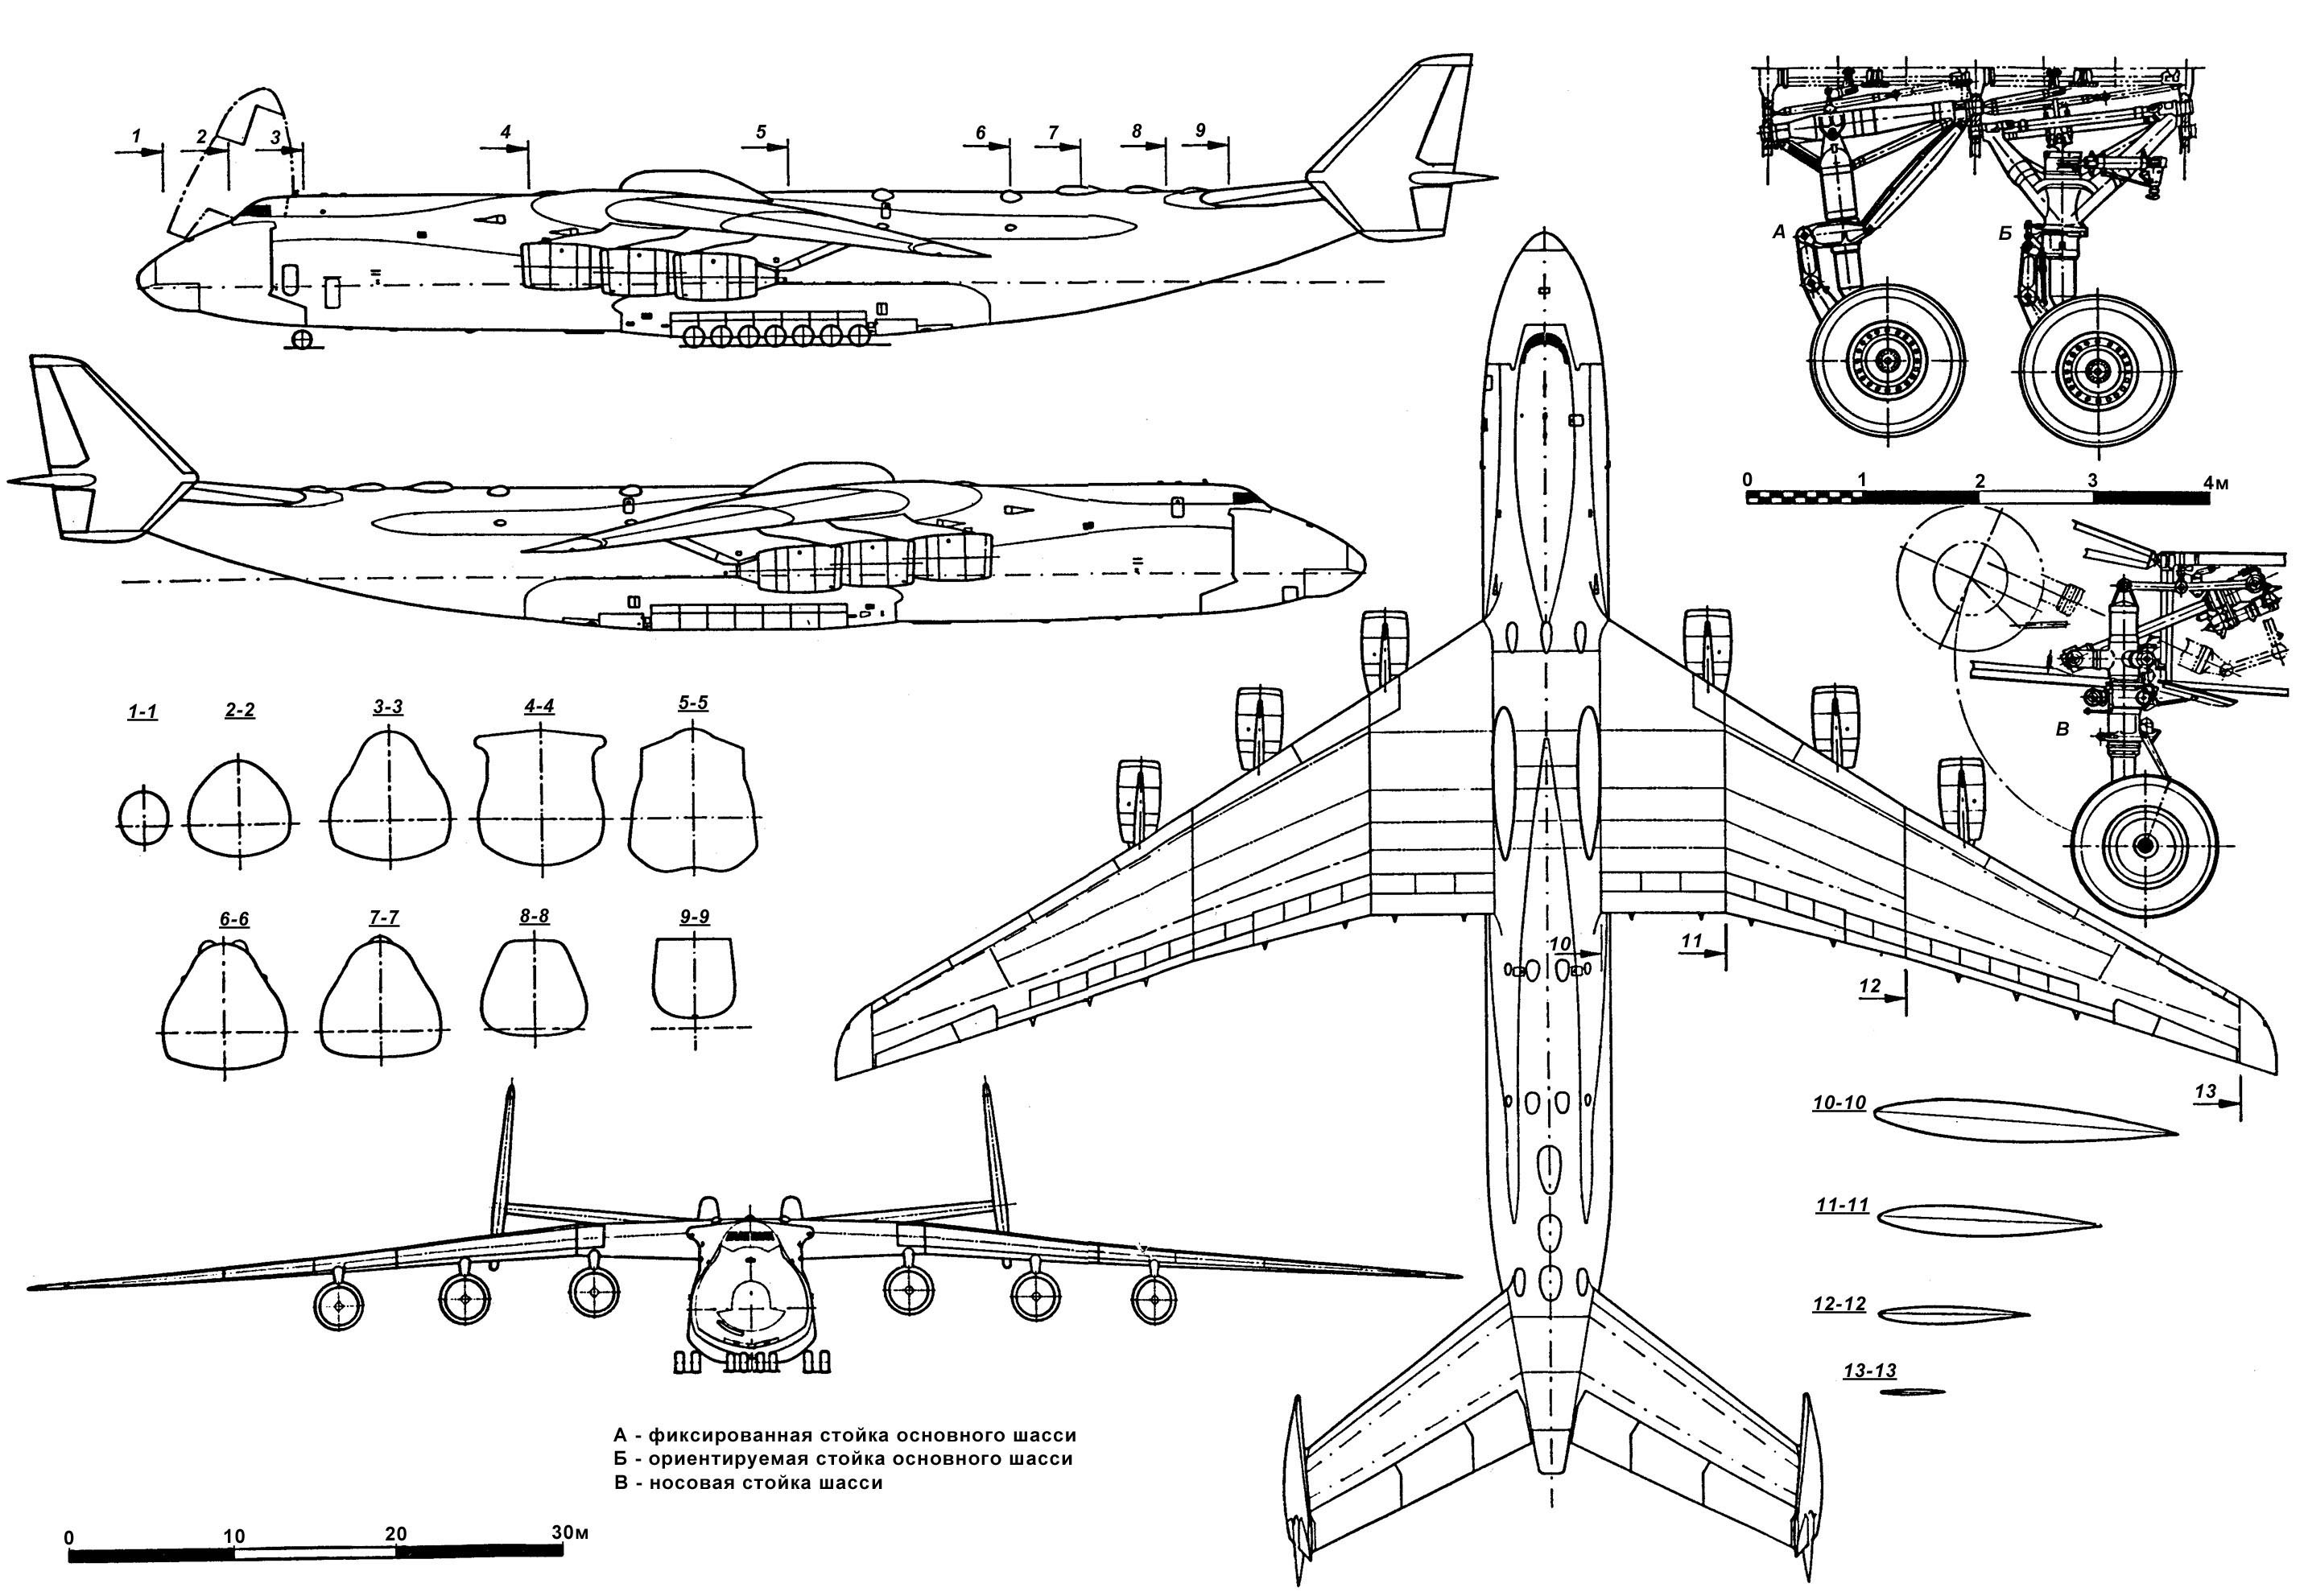 An-225 Mriya blueprint